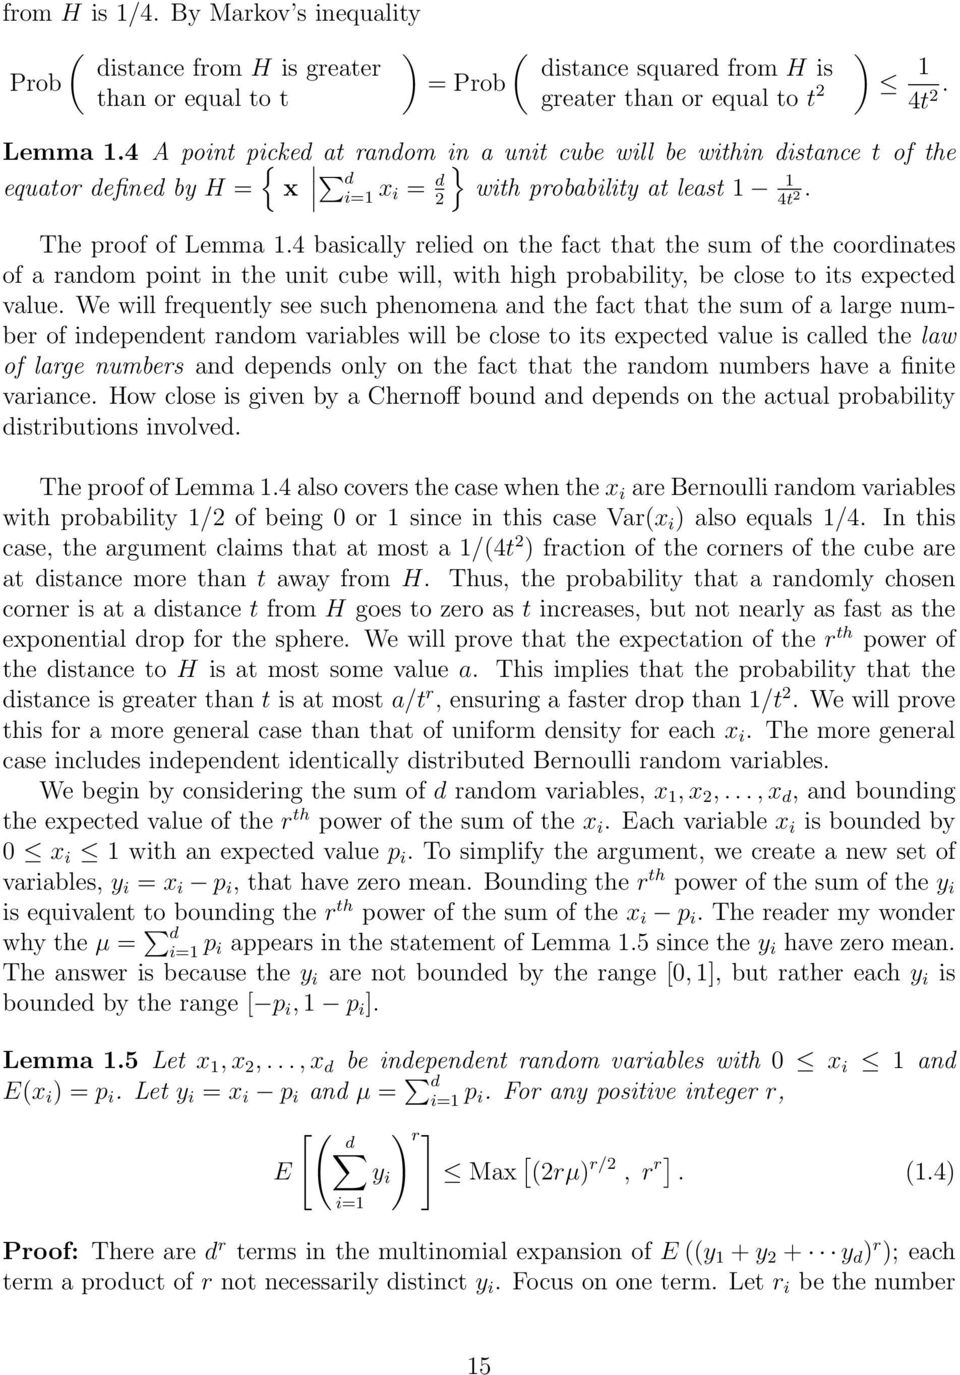 4 basically relie on the fact that the sum of the coorinates of a ranom point in the unit cube will, with high probability, be close to its expecte value.